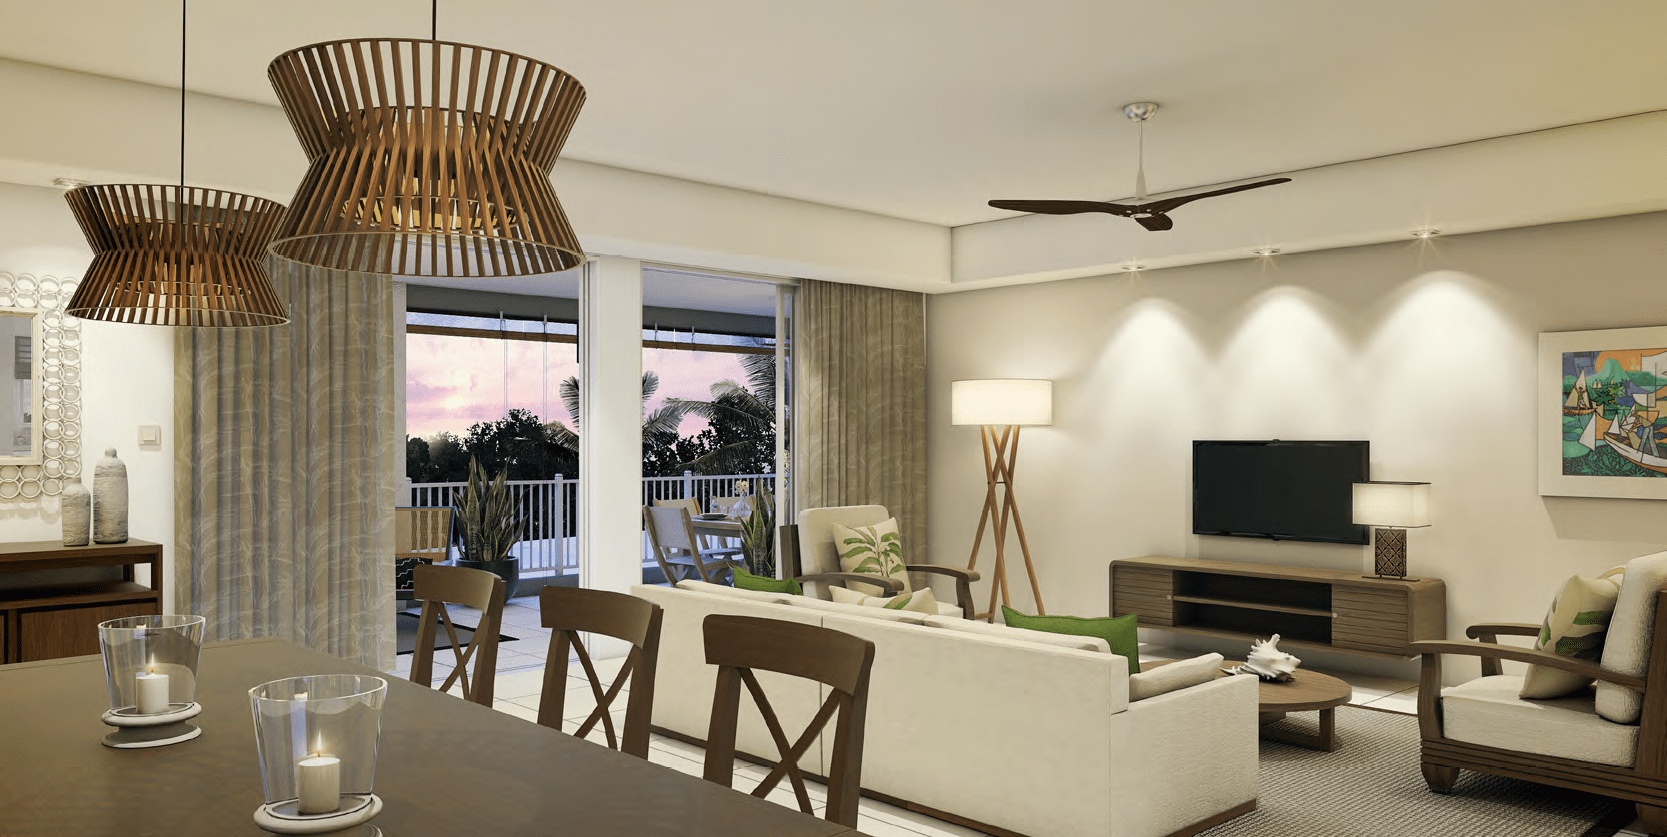 Luxury Penthouse of 3 Rooms For Sale │ Ki Résidence Mauritius